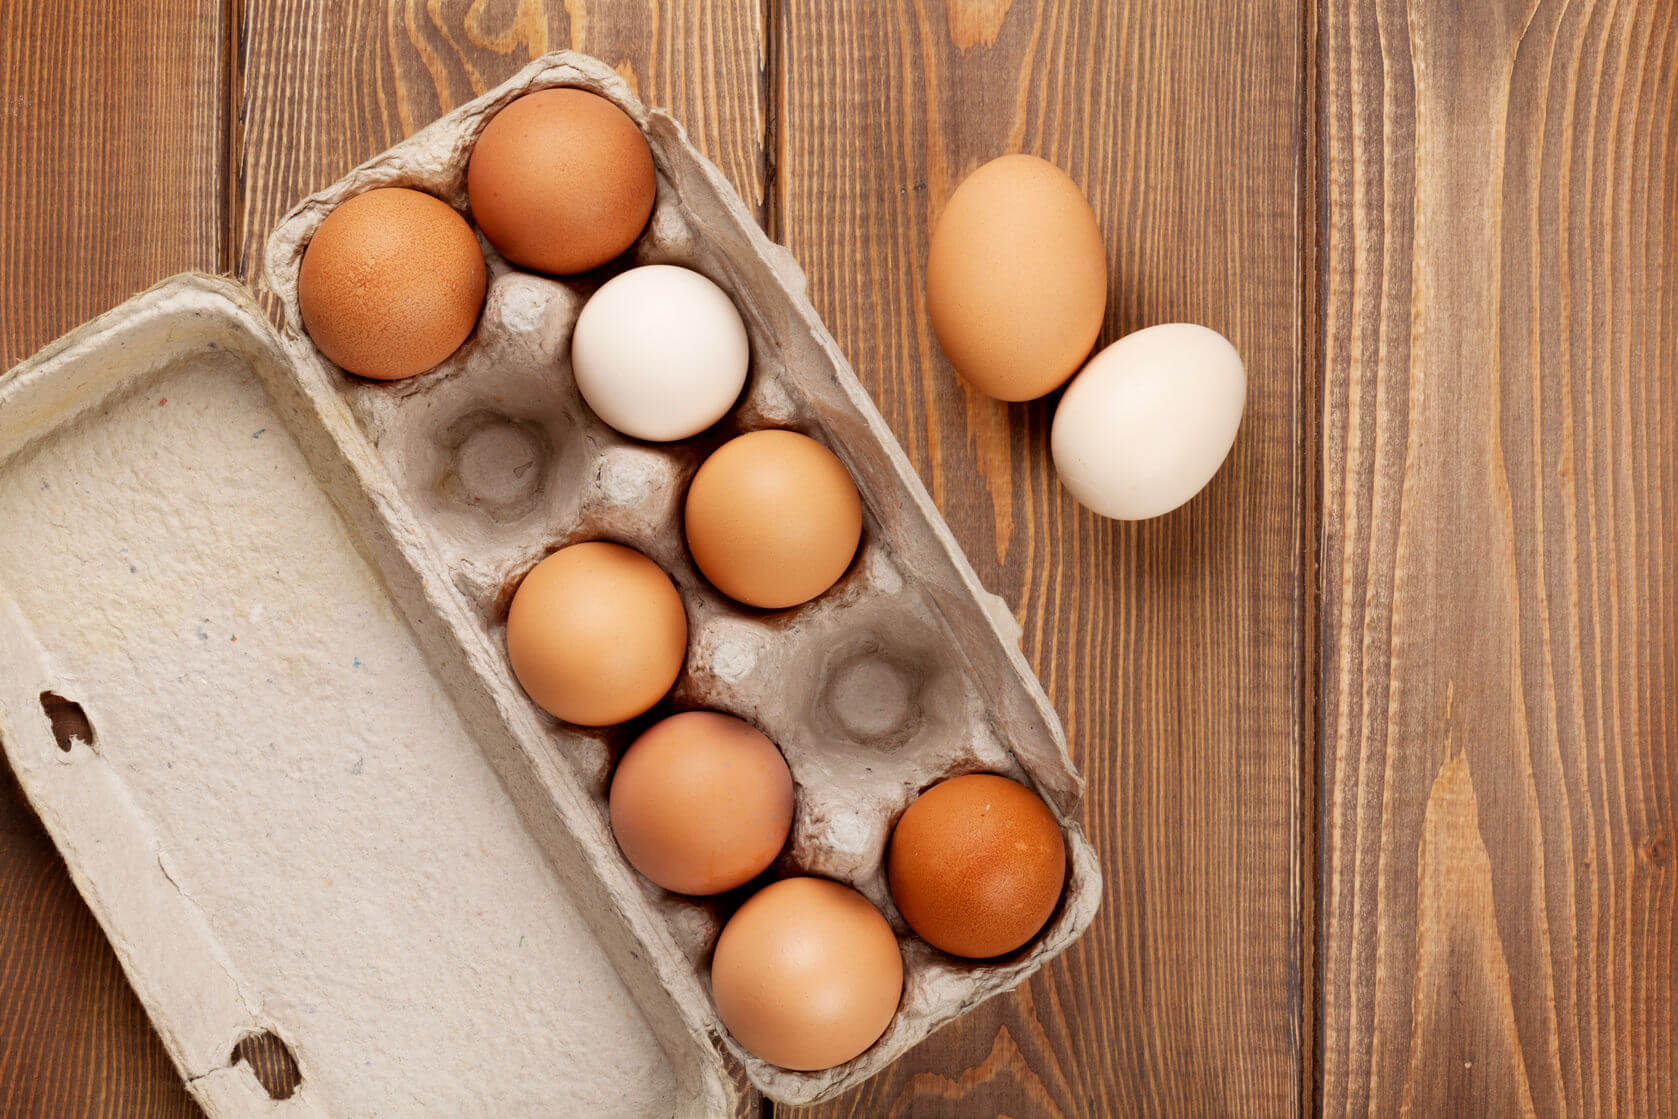 egg carton labels | Gundry MD